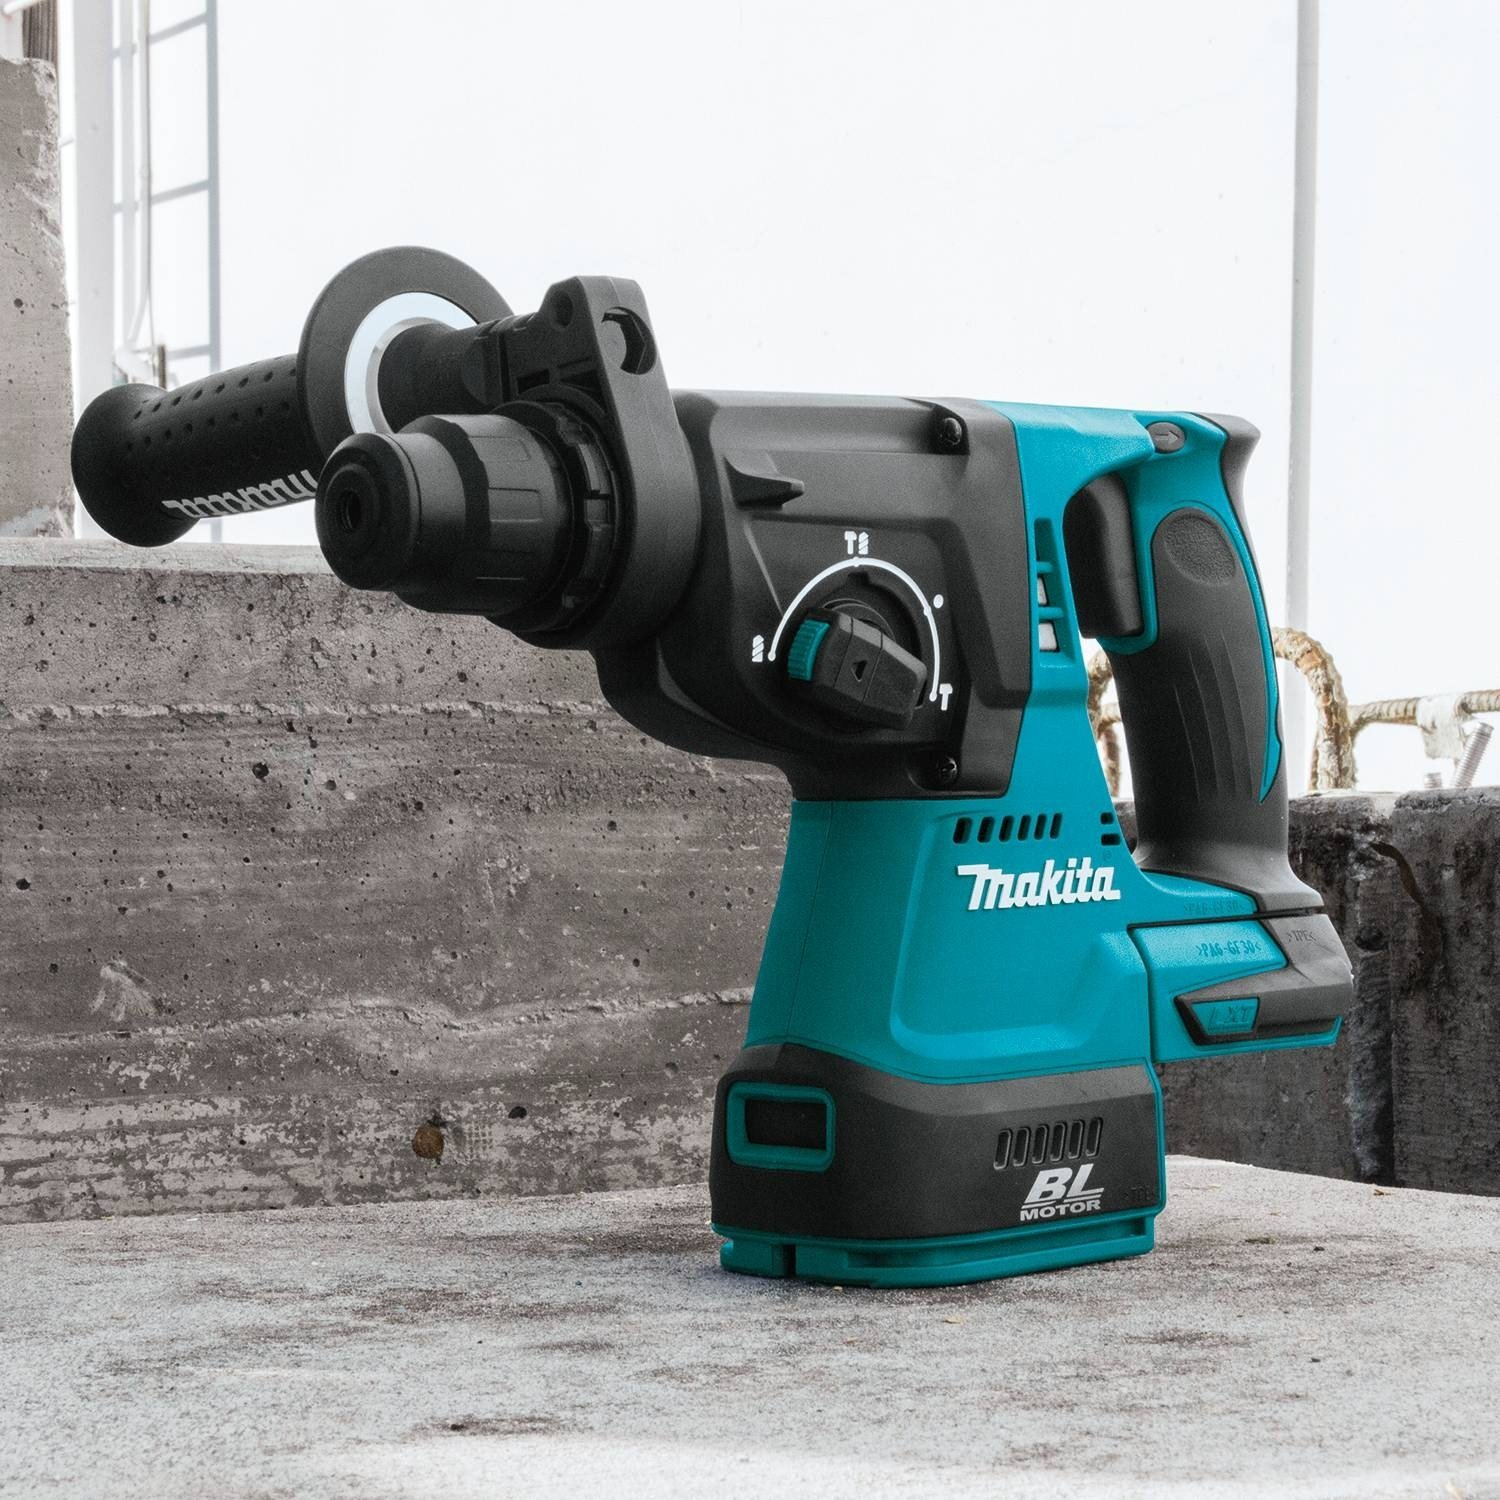 Top 3 Cordless Rotary Hammers | Buying Guide & Comparison